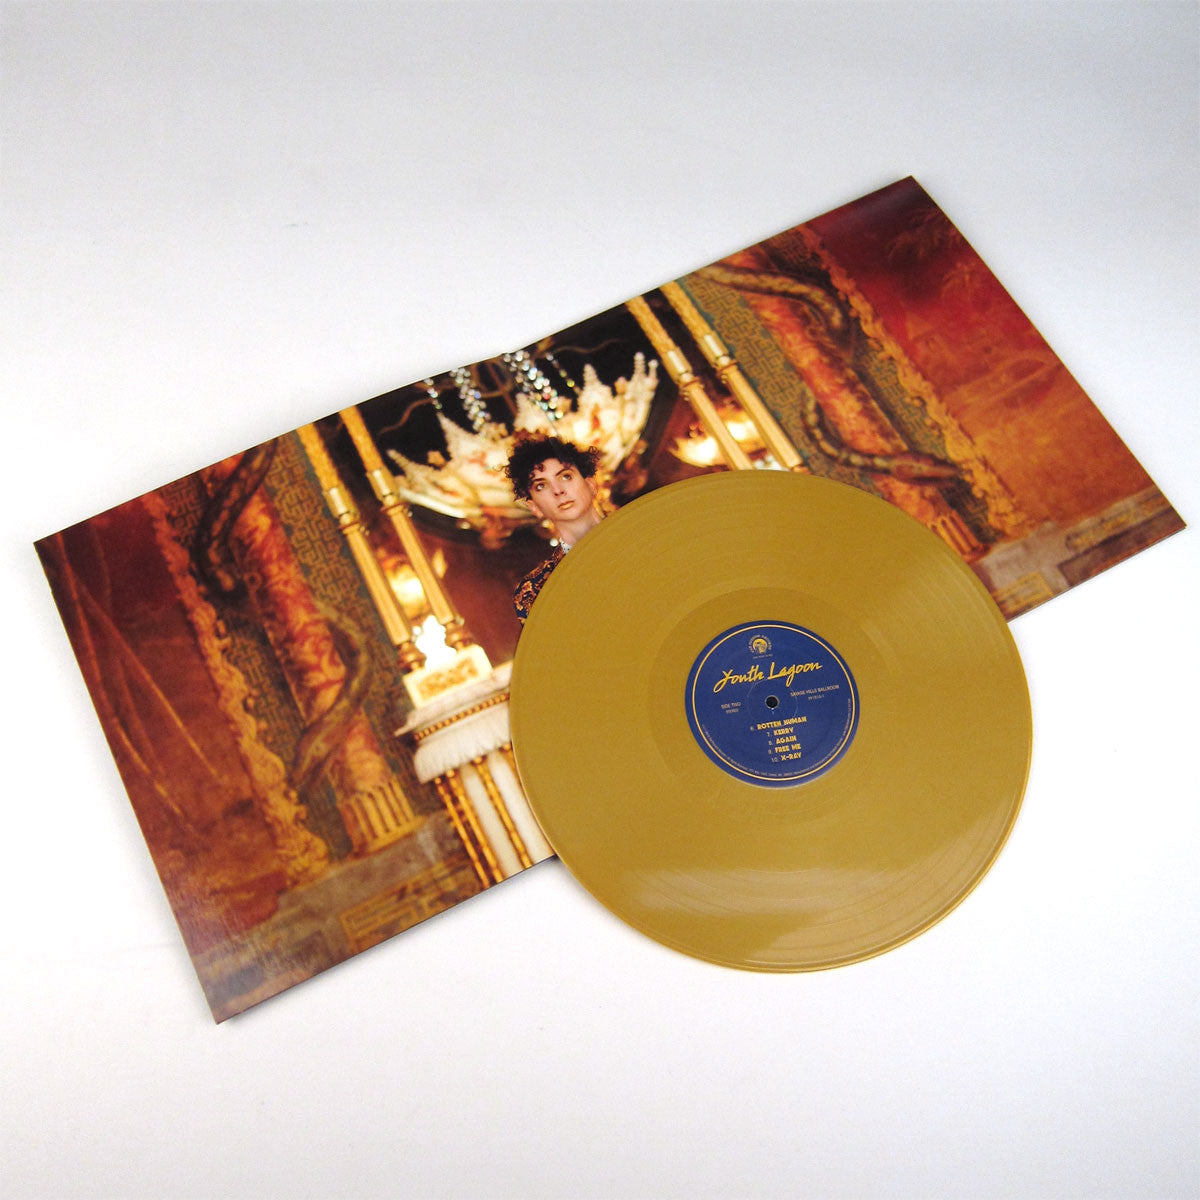 Youth Lagoon: Savage Hills Ballroom (Colored Vinyl) Vinyl LP